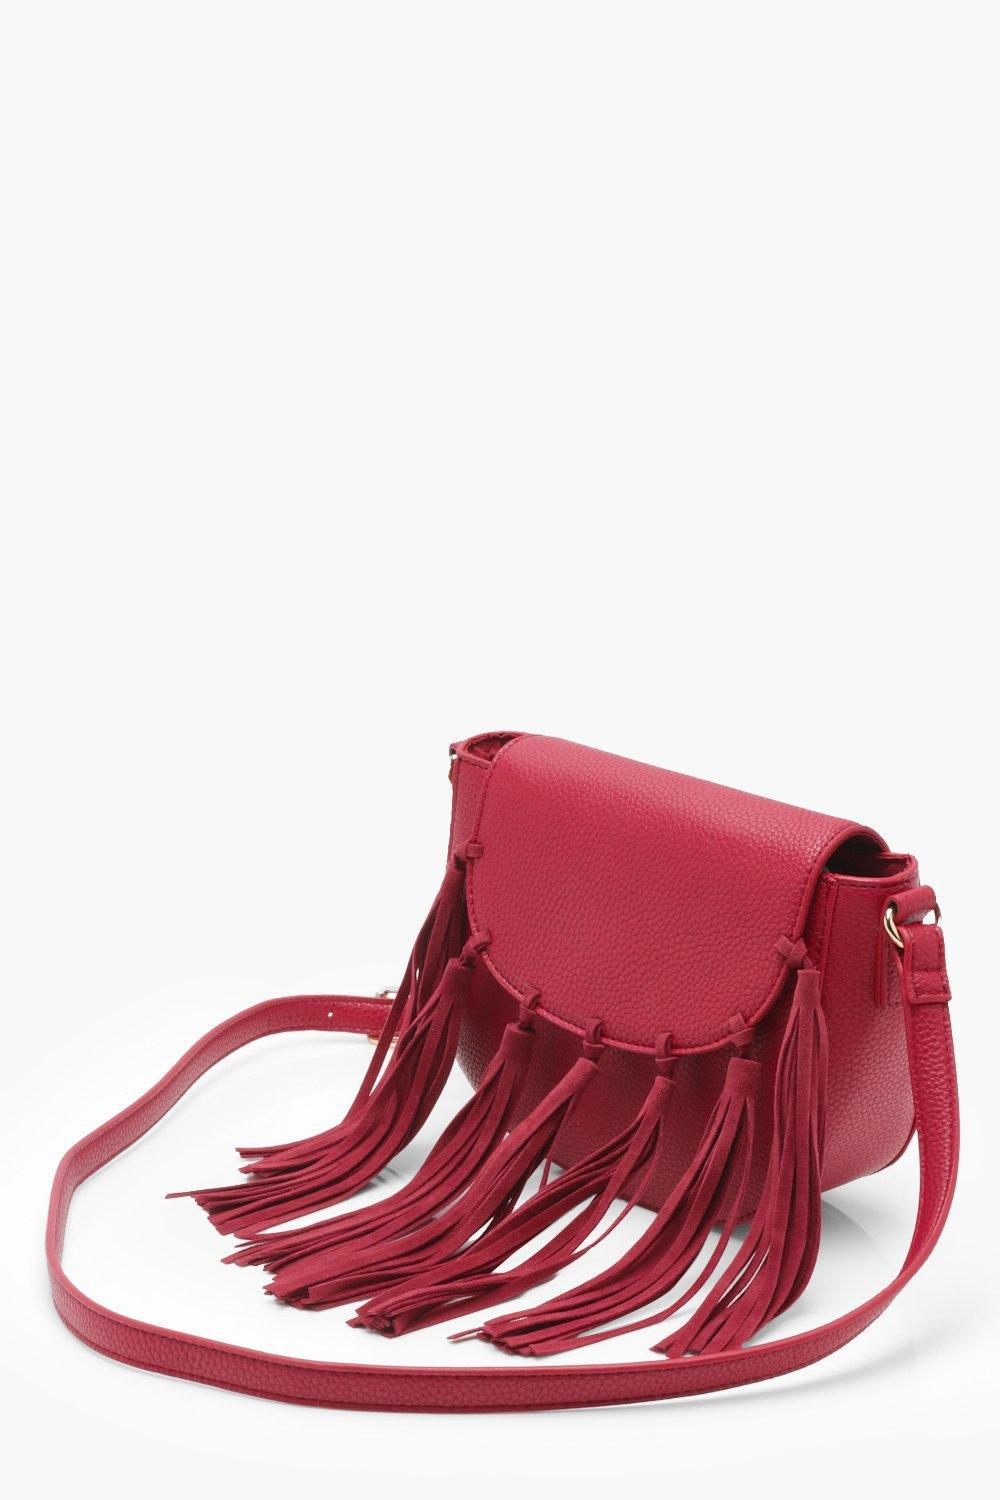 febcfc71913 Gallery. Previously sold at: Boohoo · Women's Cross Body Bags ...